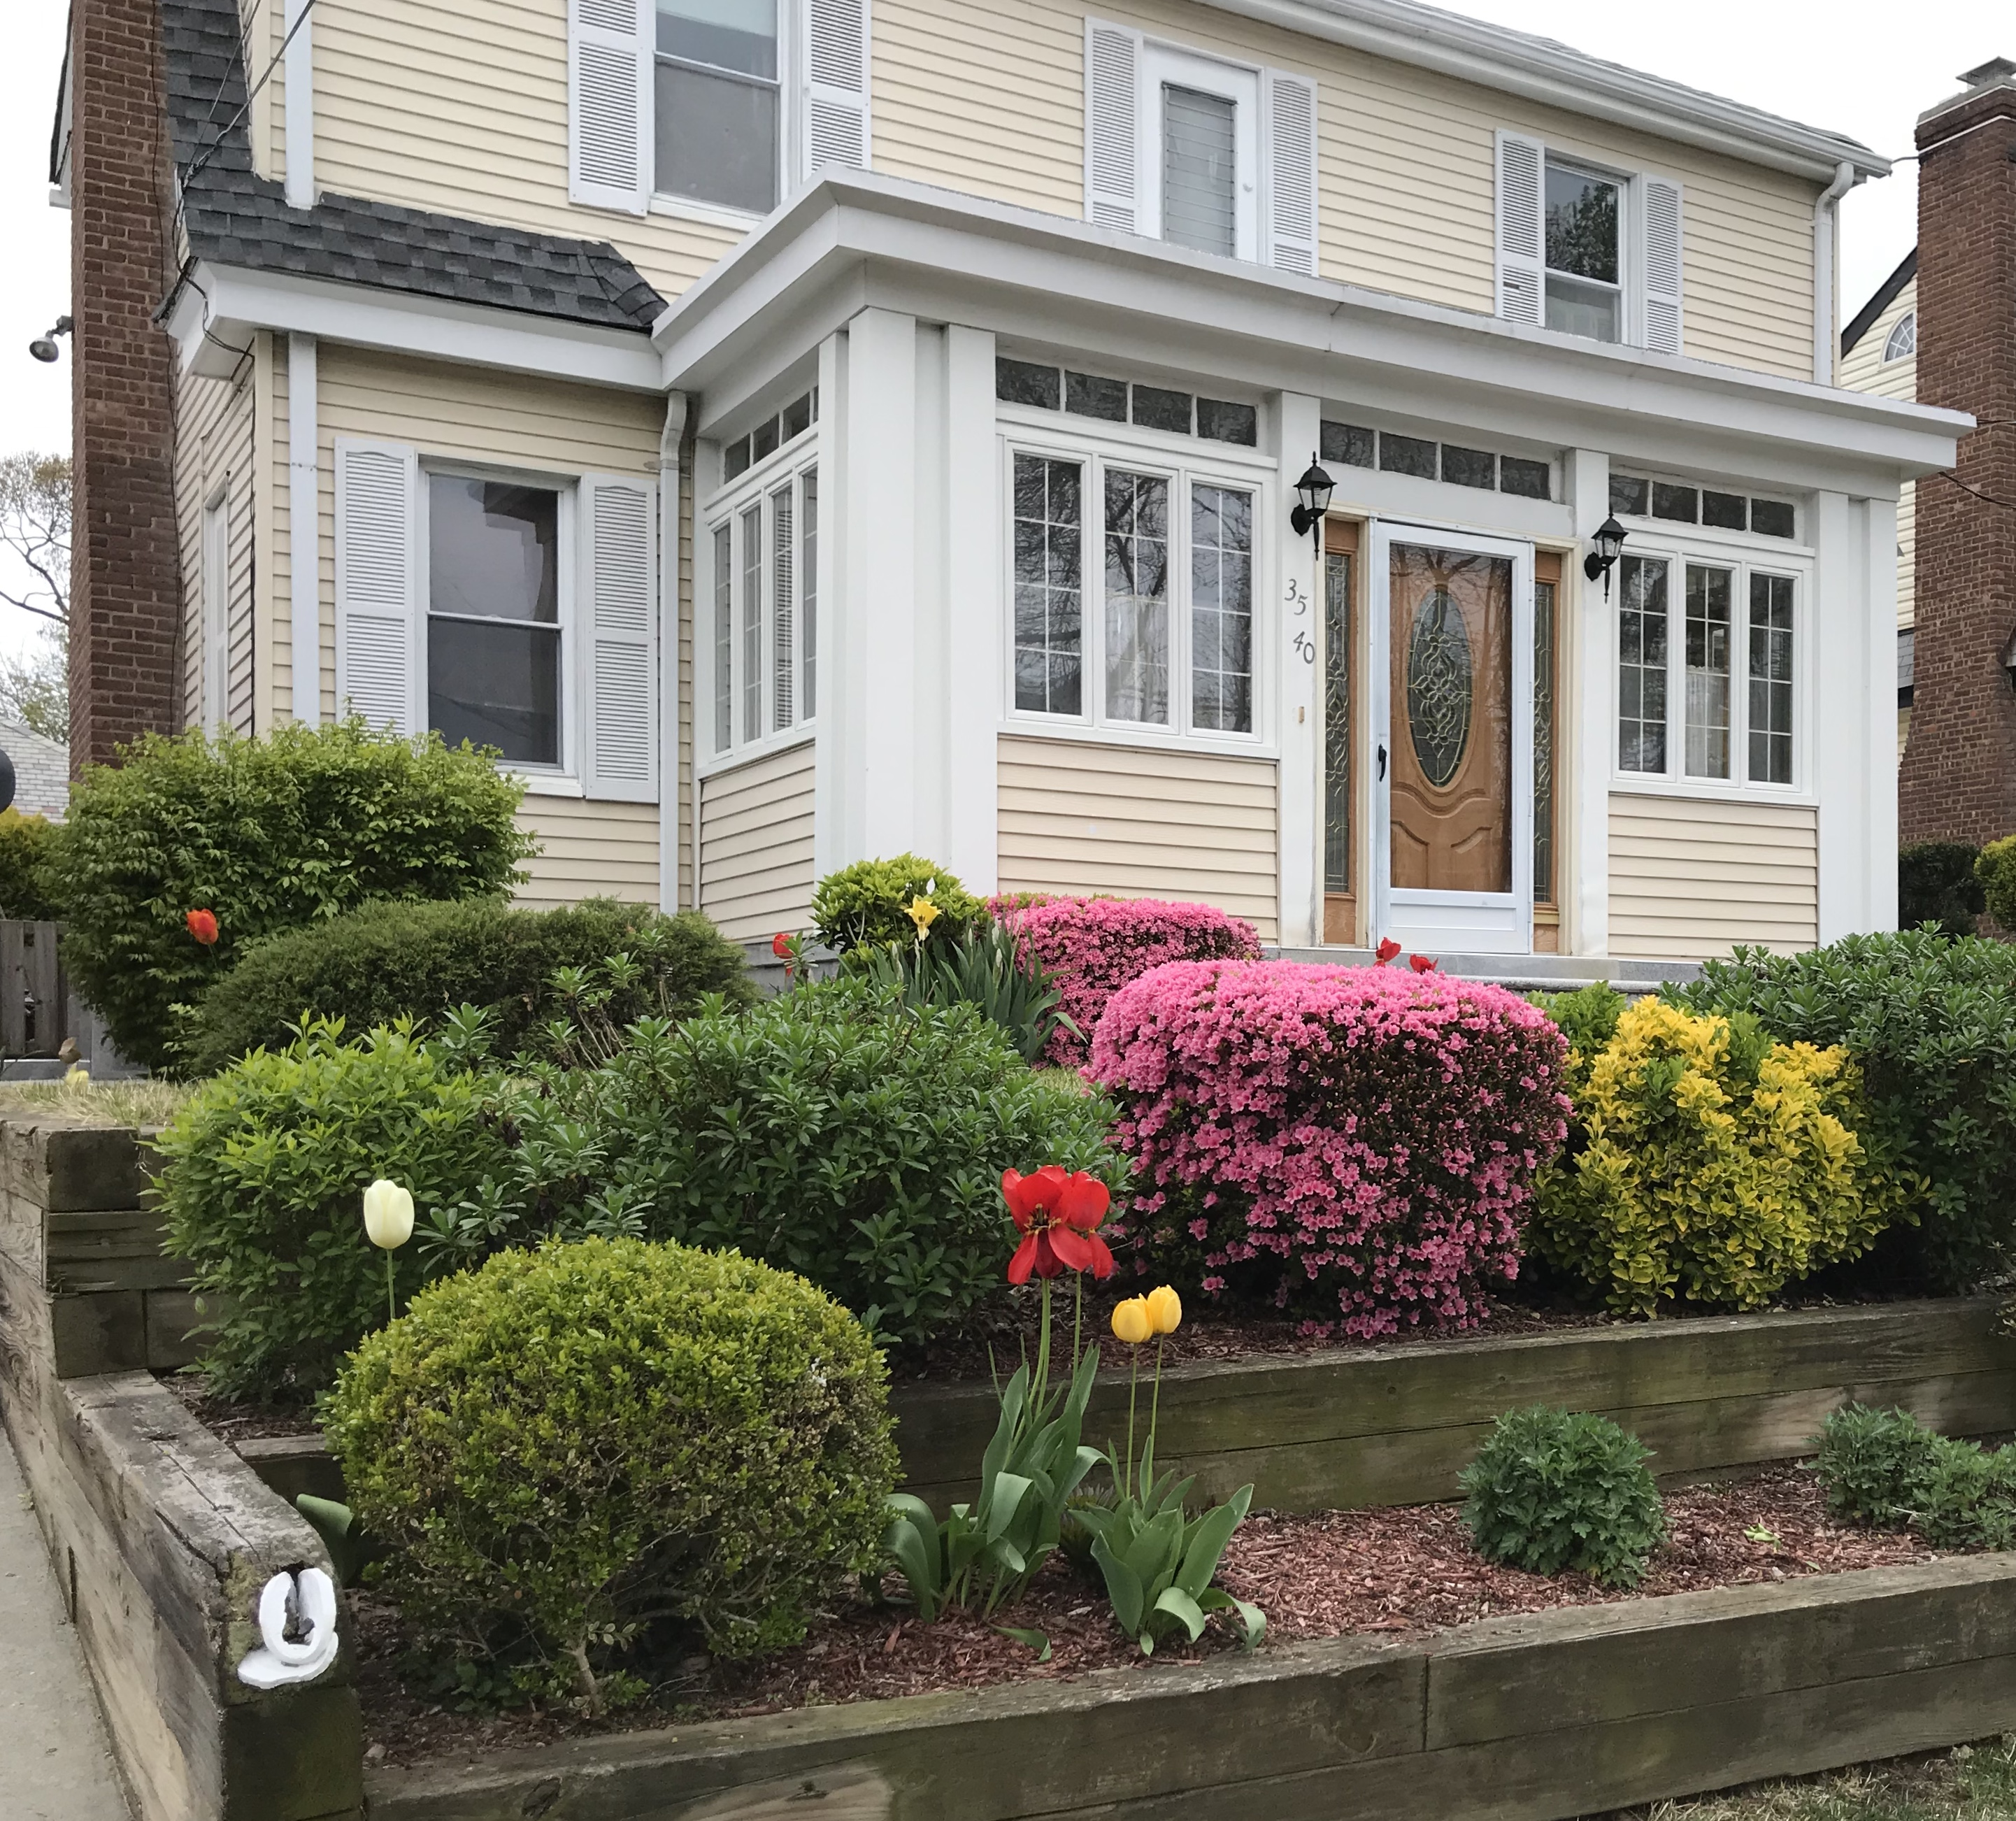 35-40 170th Street - Jung Residence